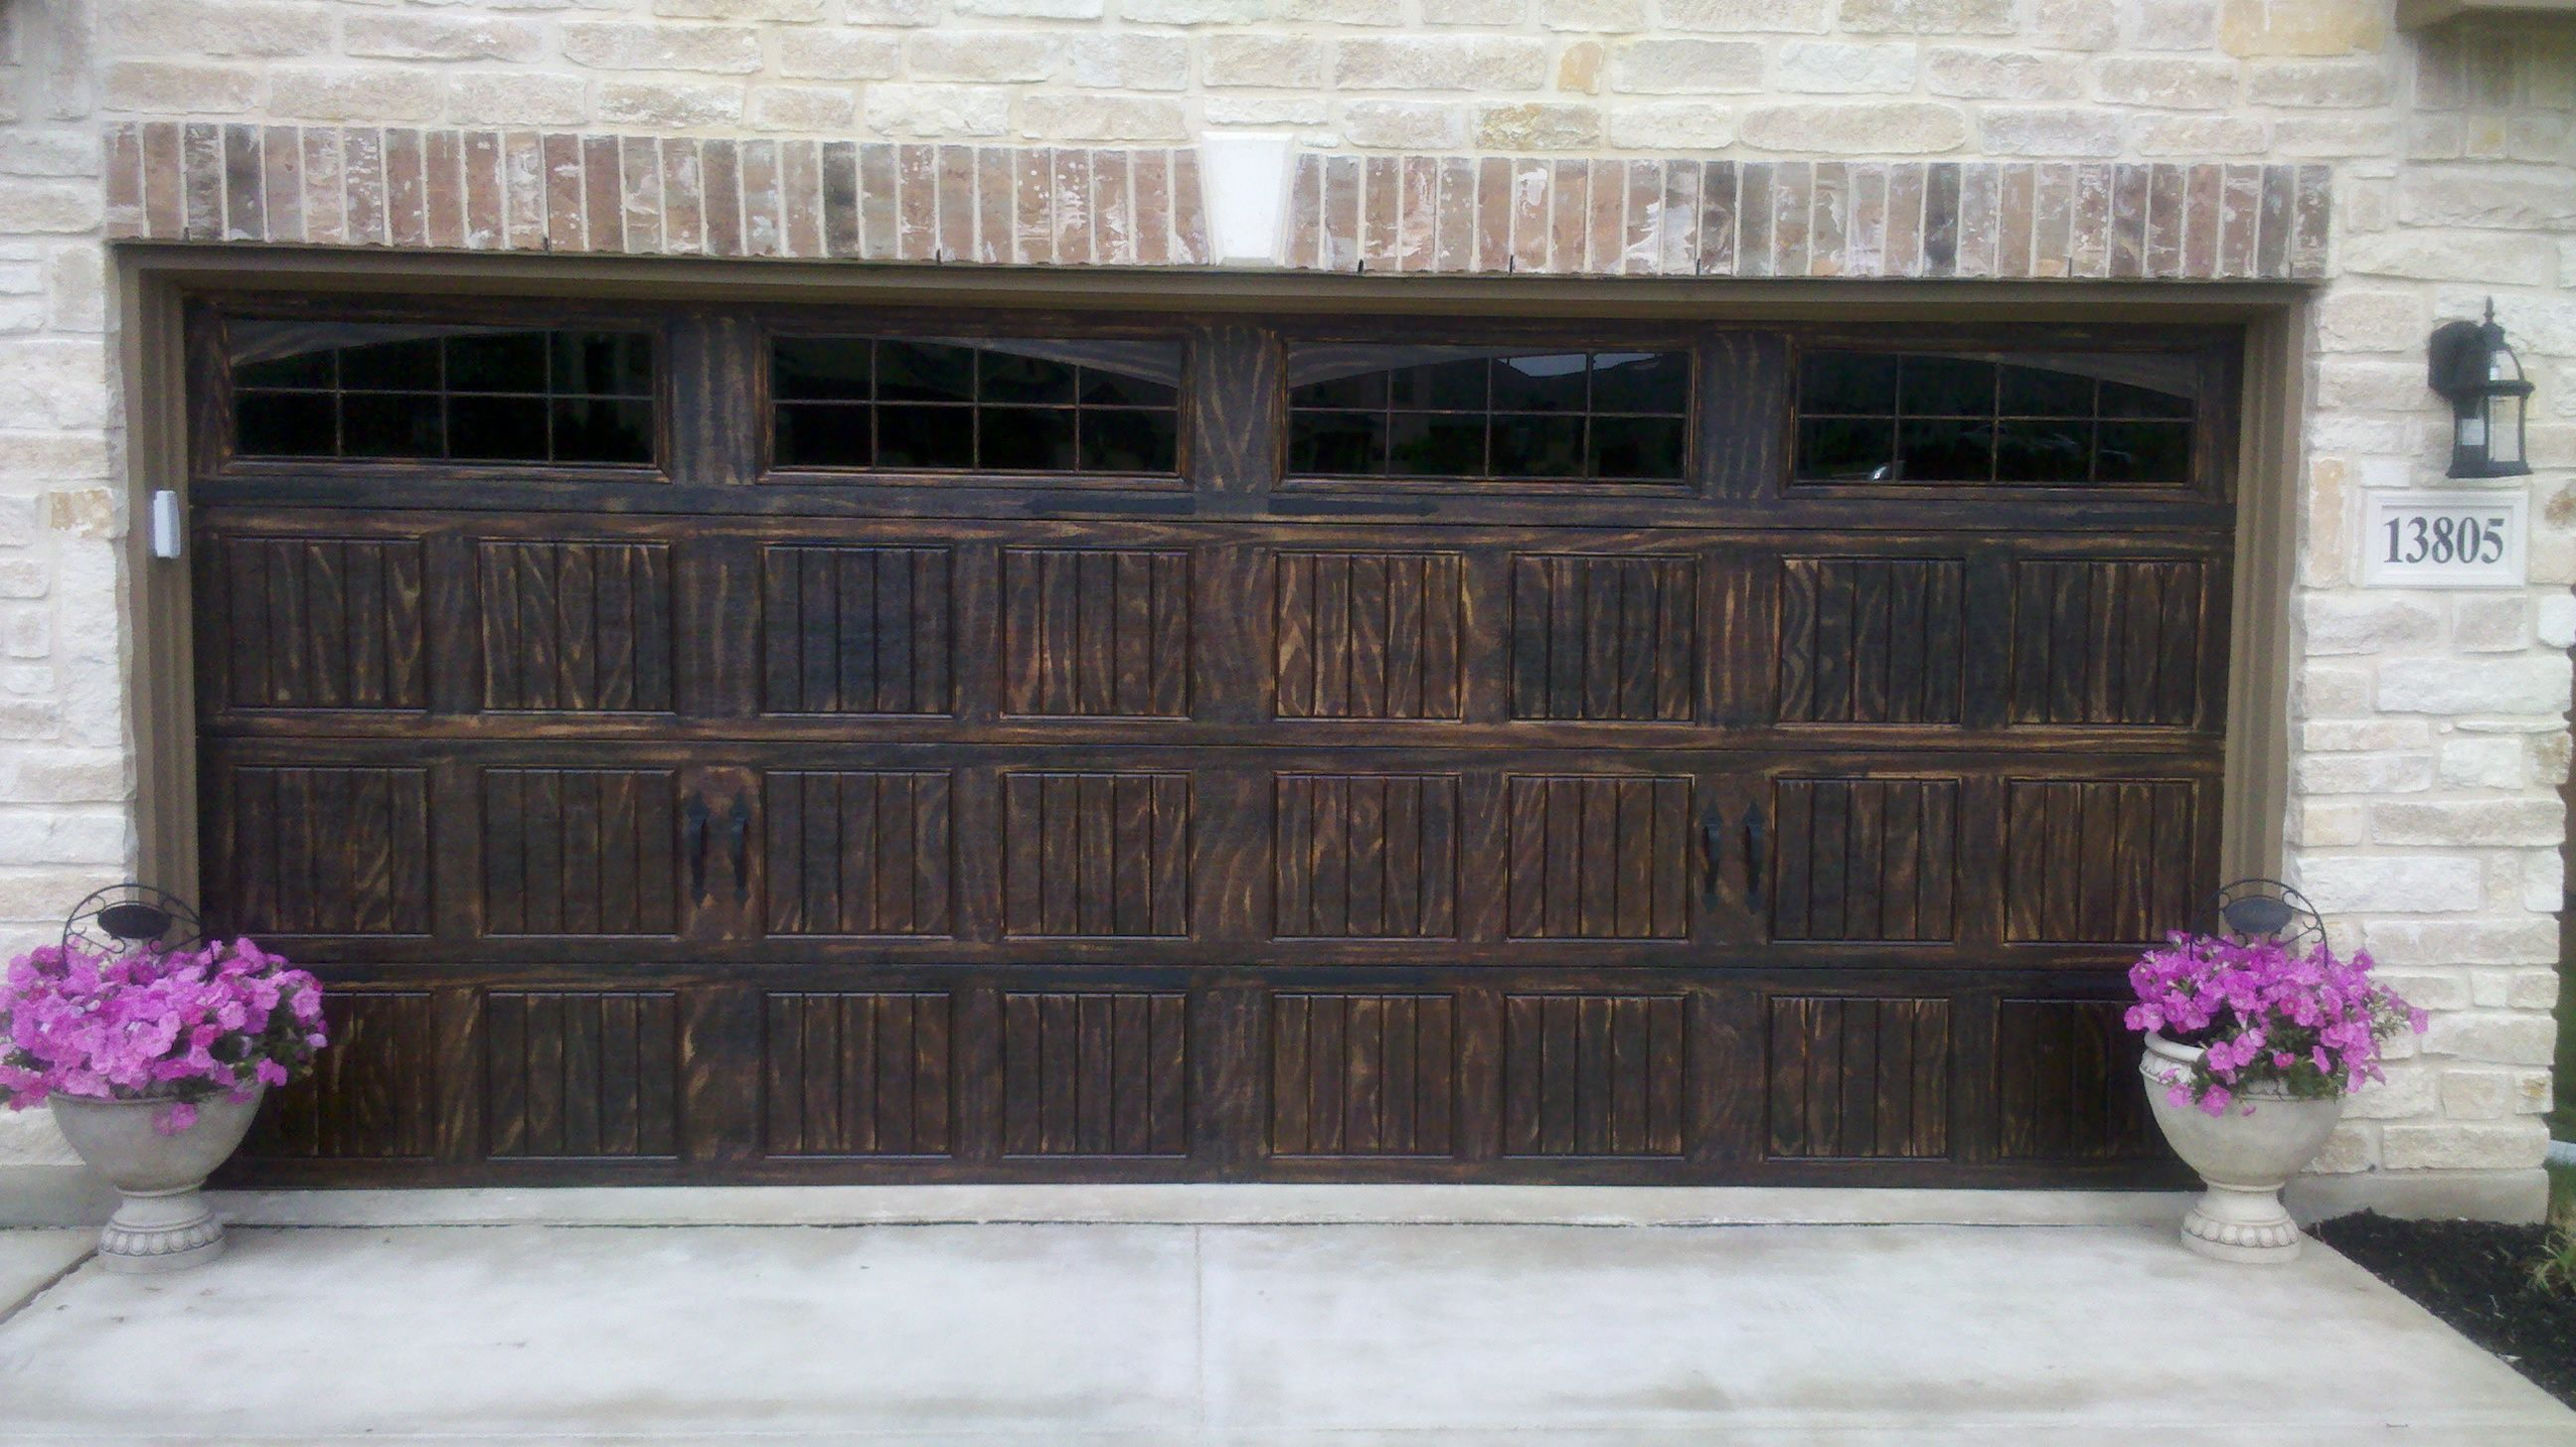 1456 #874388  Woodgrain Faux Sonoma Style Steel Garage Wayne S Dalton Garage picture/photo Wayne Dalton Fiberglass Garage Doors 36492592